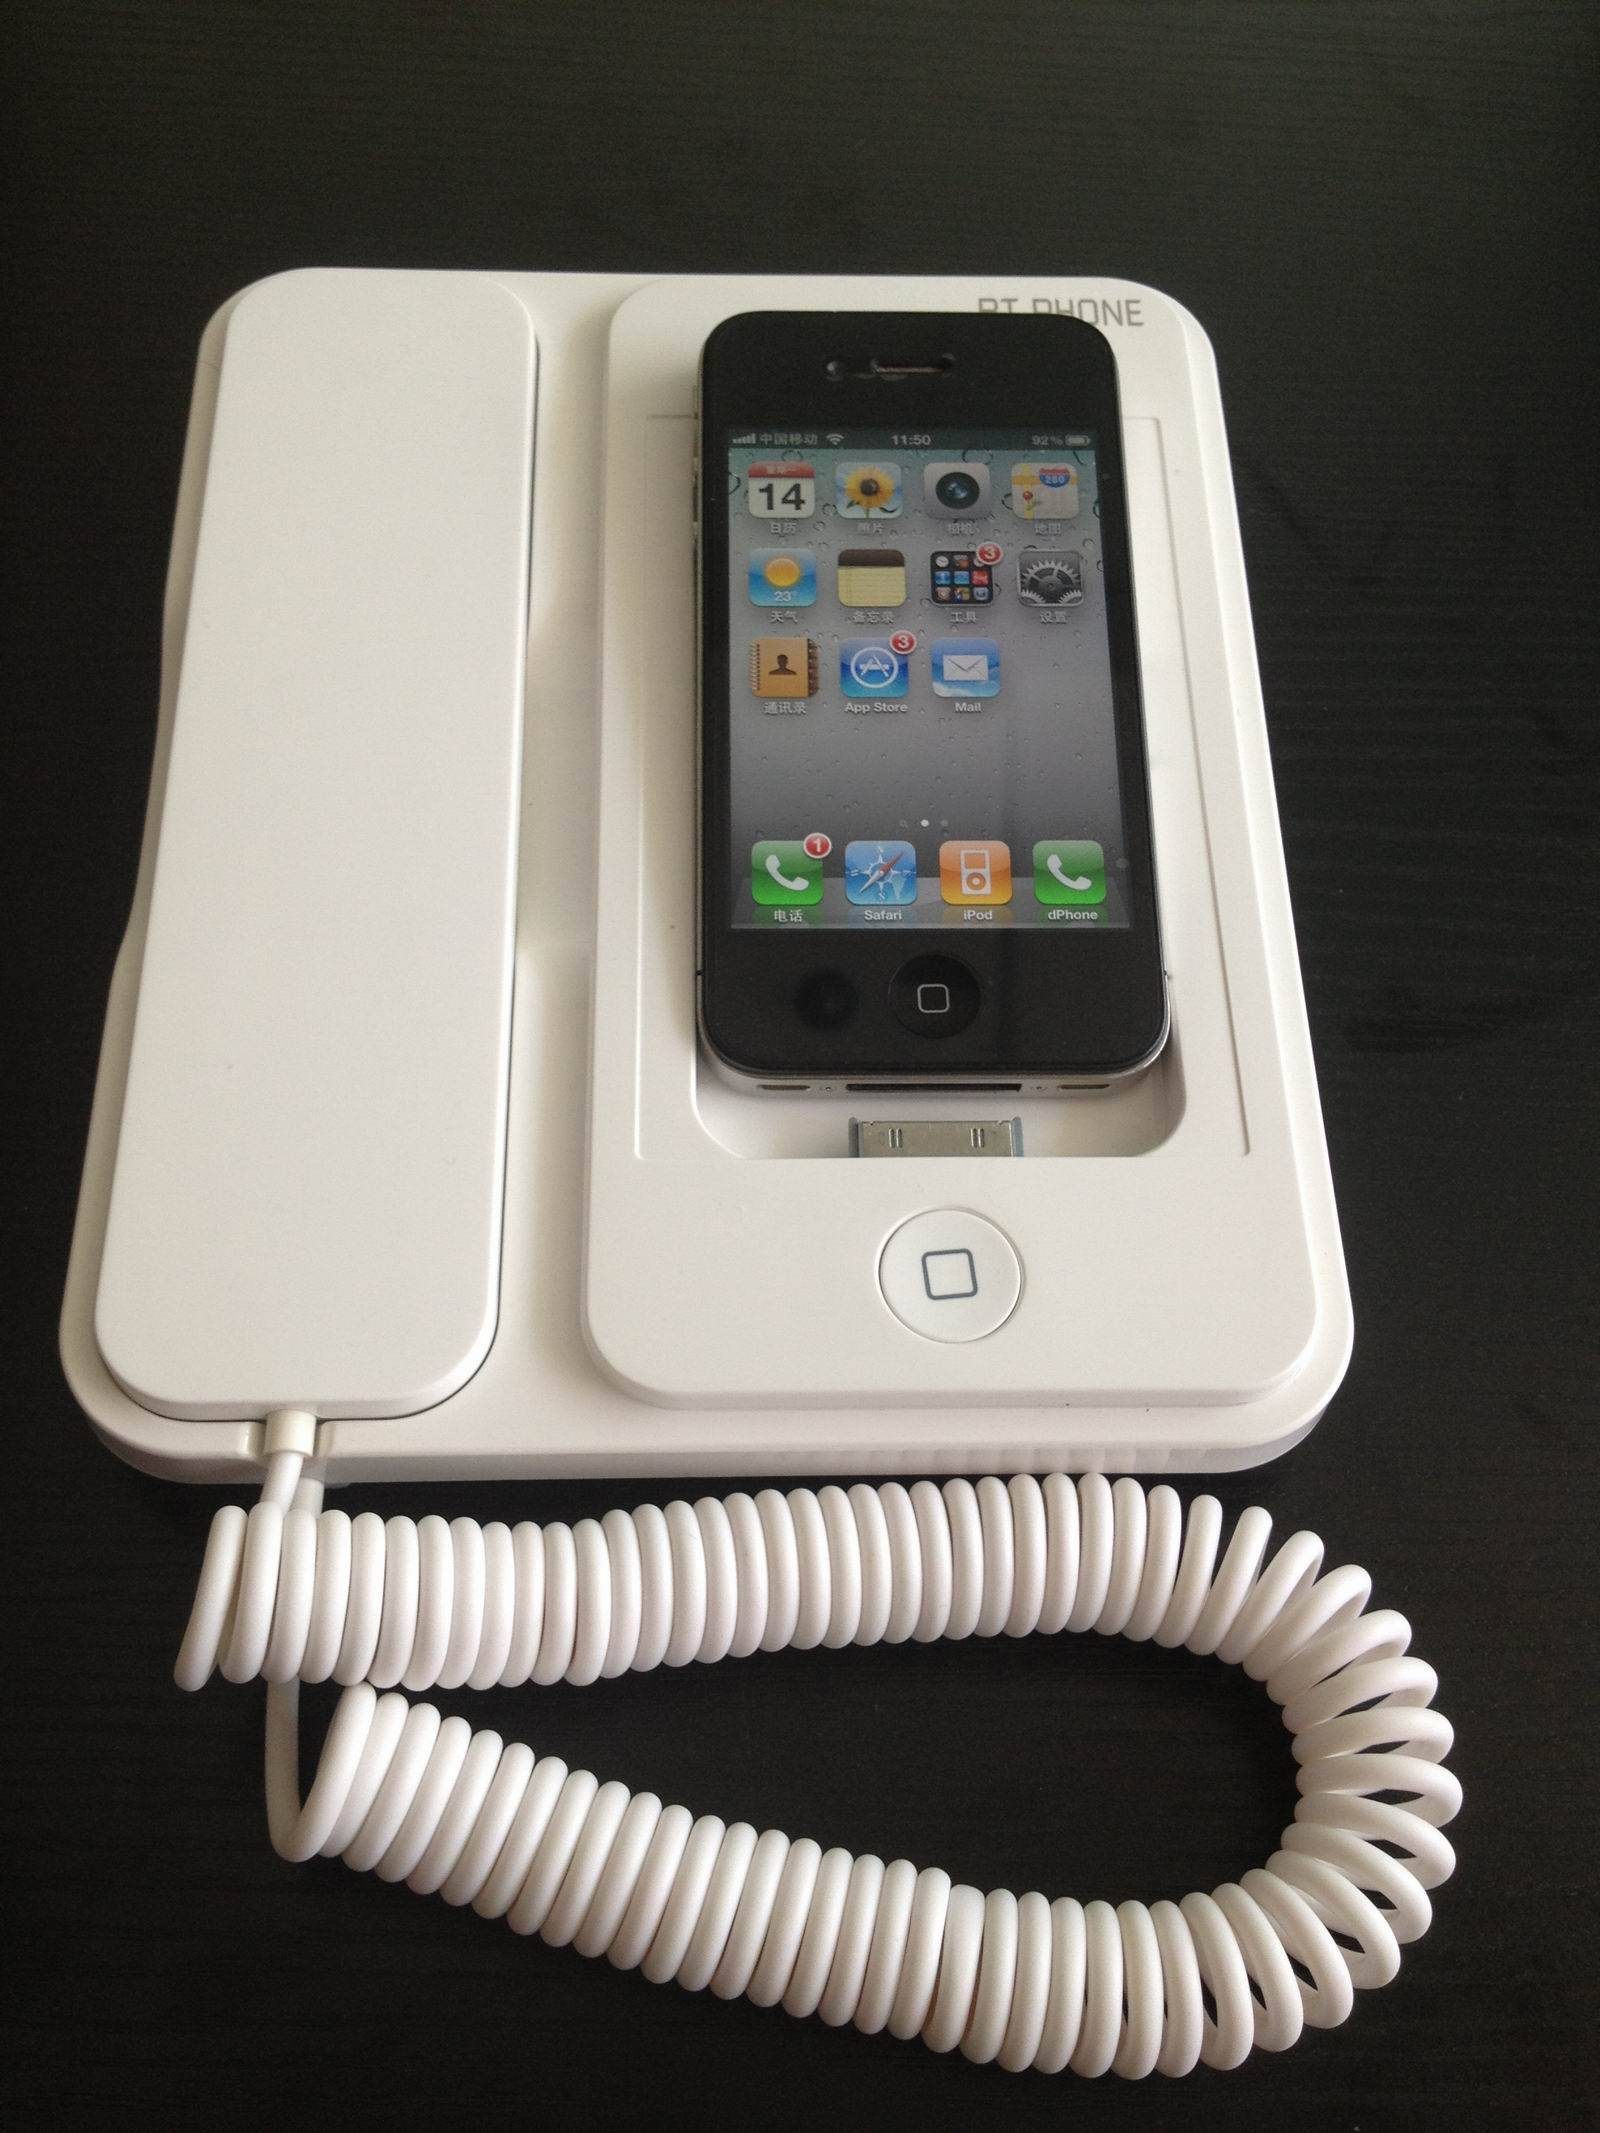 The world's first one Bluetooth Telephone for iPhone4/4S